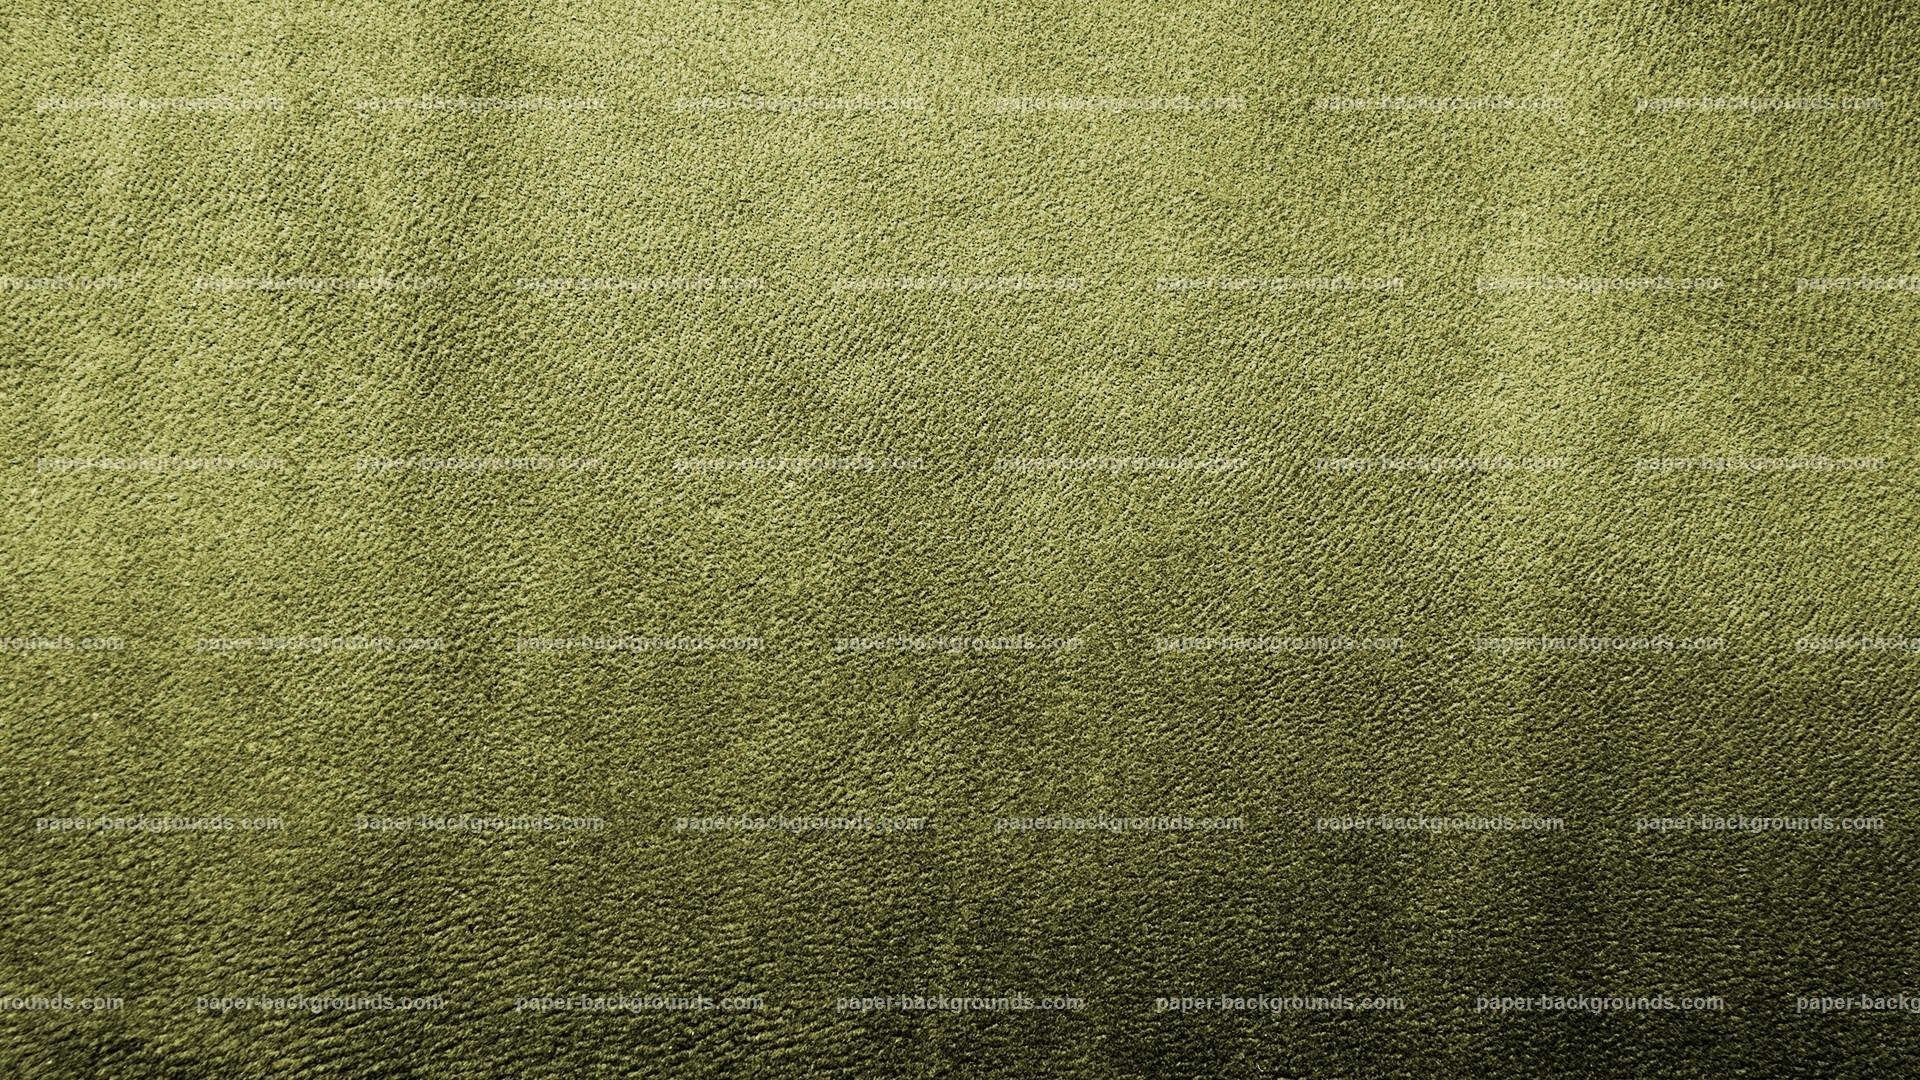 1920x1080 Army Green Soft Leather Background | Paper Backgrounds